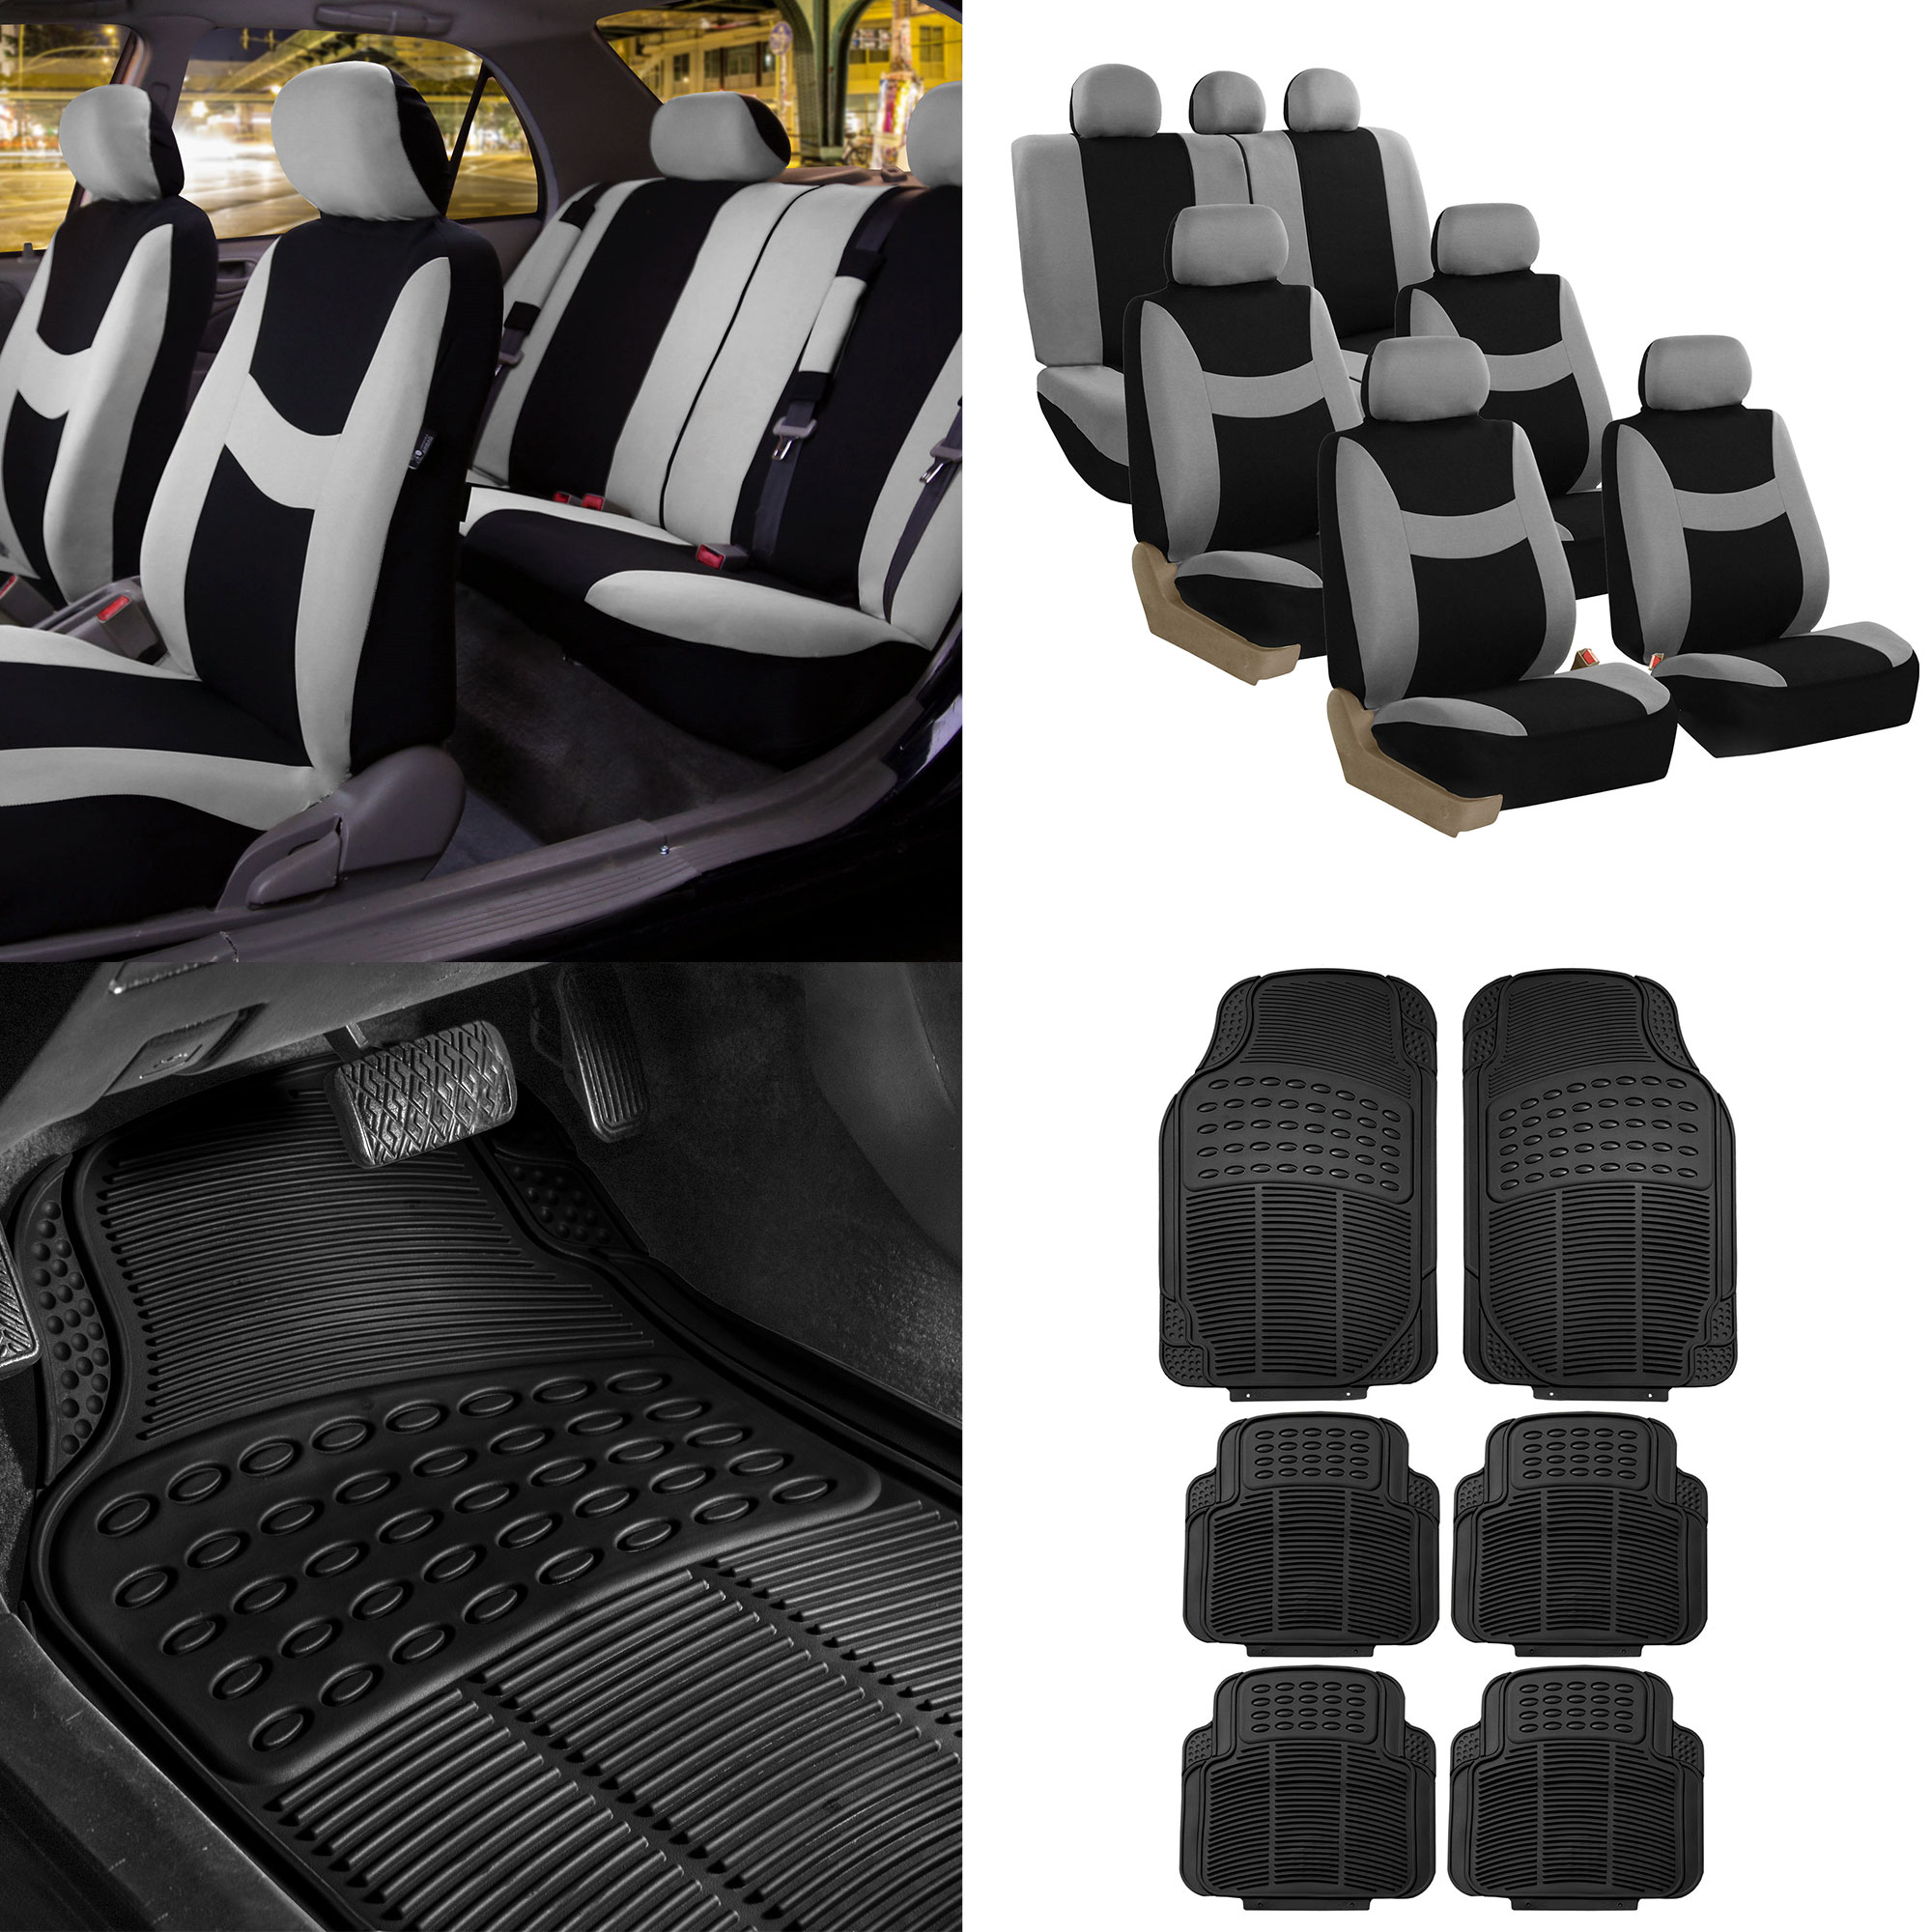 FH Group, 7 Seaters 3 Row Gray Black Seat Covers for SUV Van Combo with Black Floor Mats